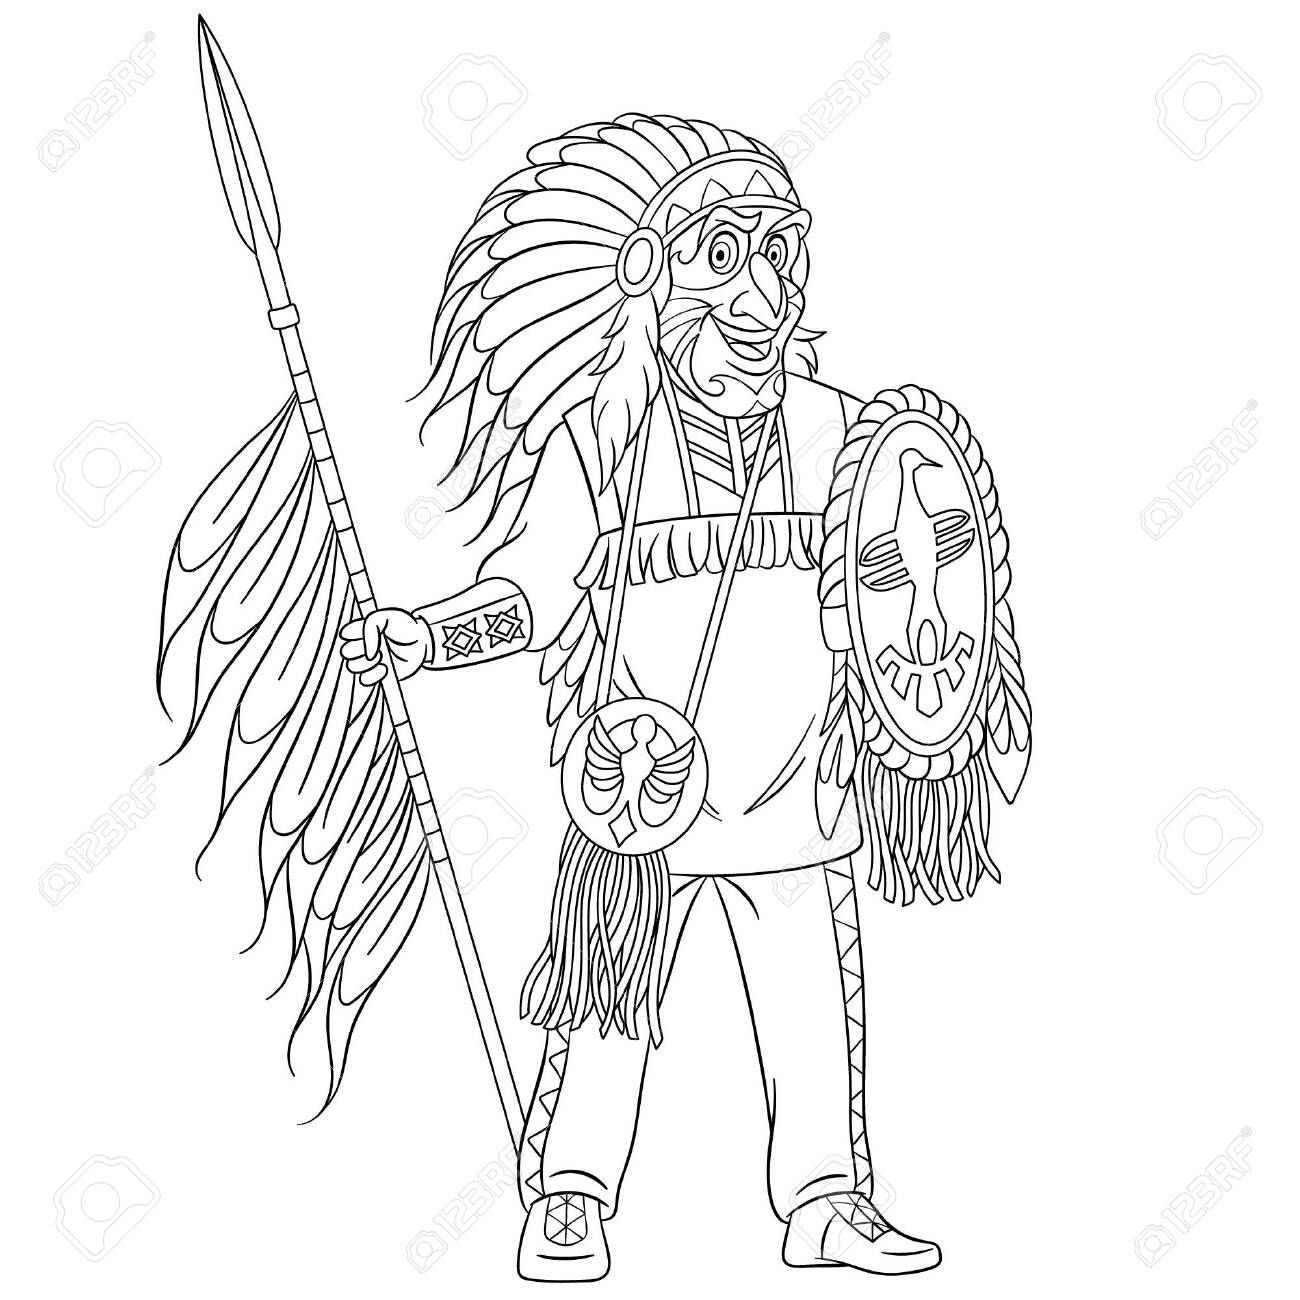 - Colouring Page. Cute Cartoon Native American Indian Warrior With